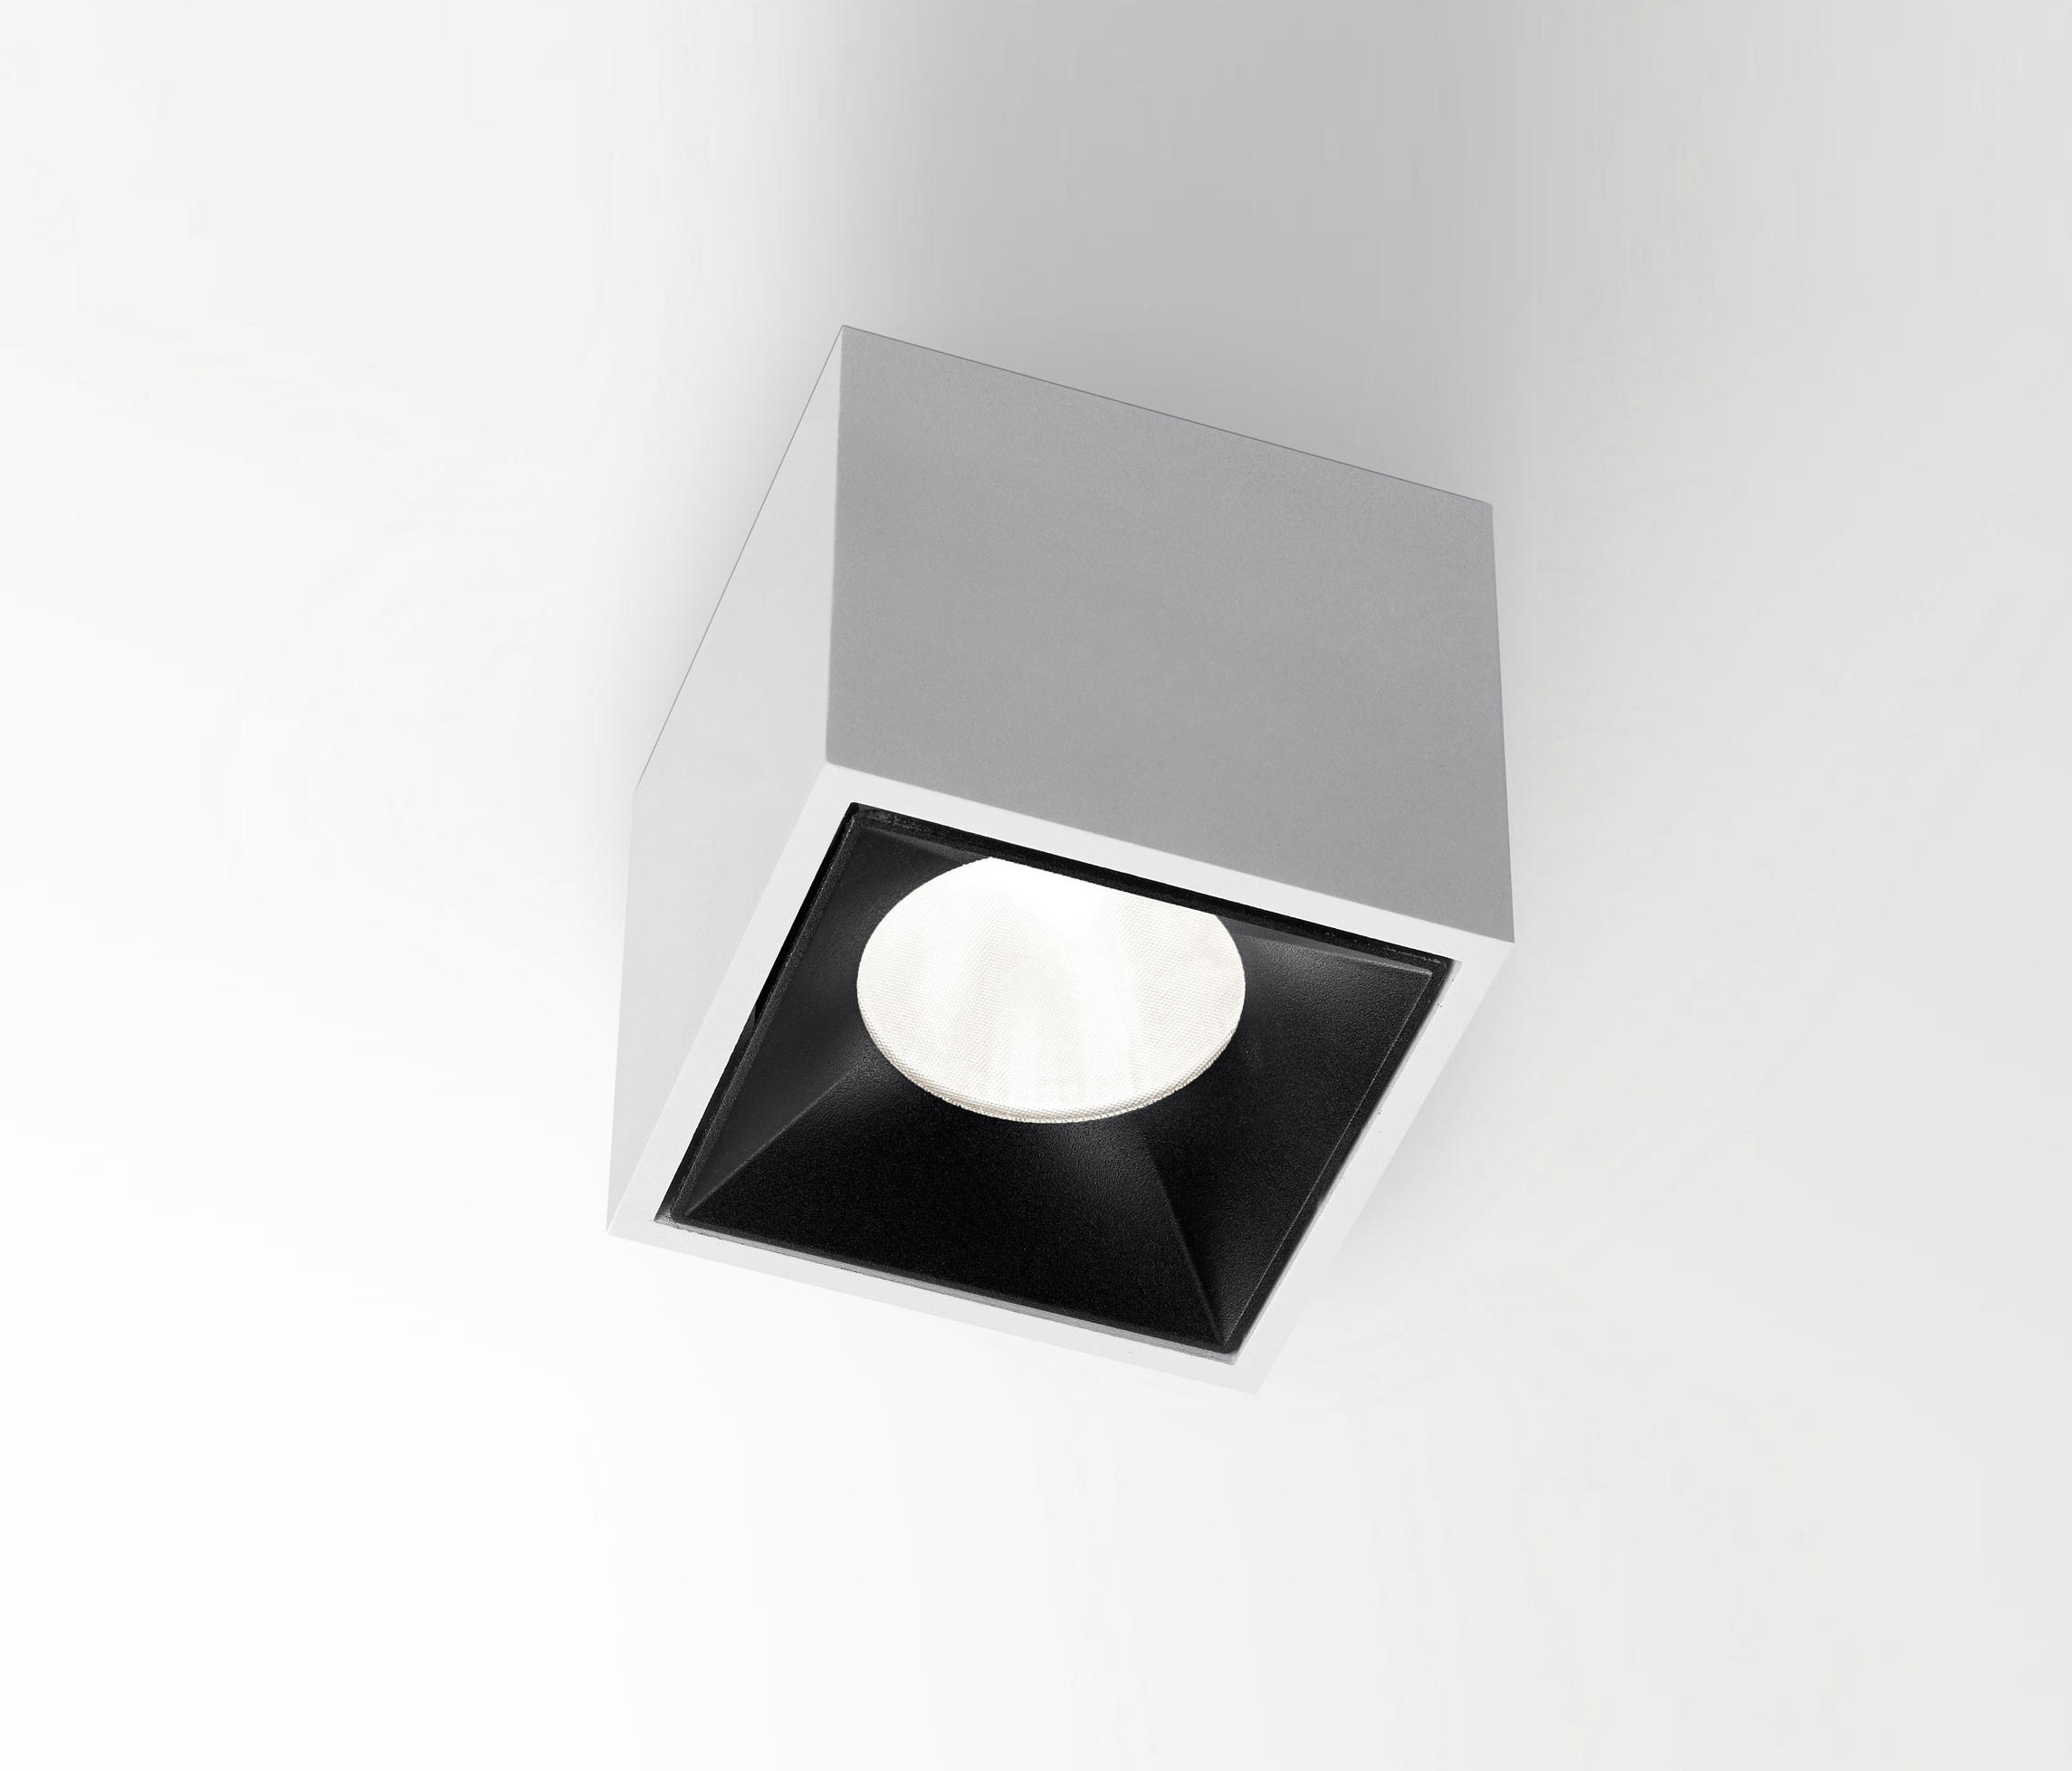 Boxy Xl S Boxy Xl S 93037 Ceiling Lights From Delta